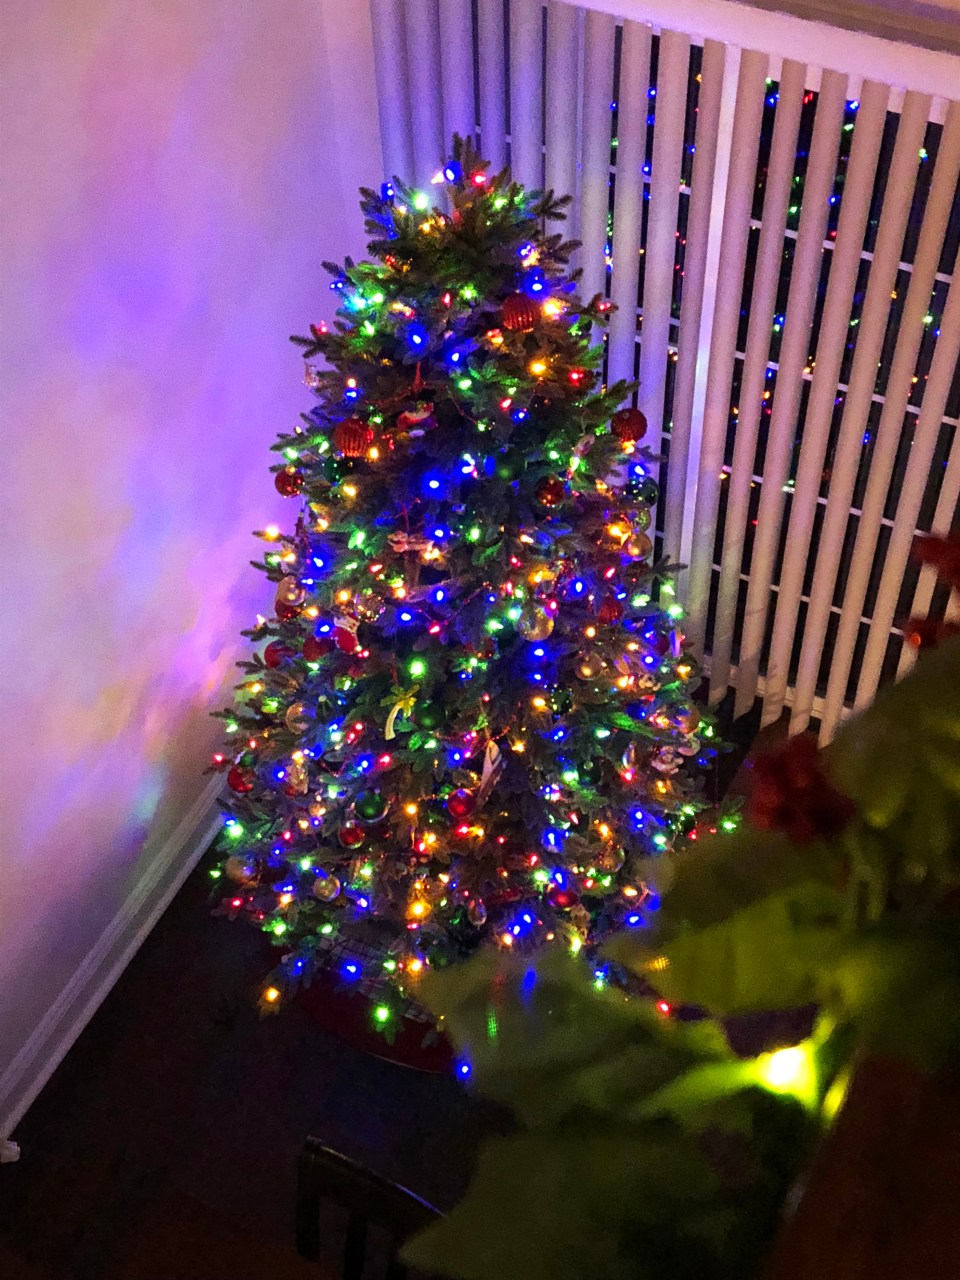 Christmas Tree - Nighttime 5